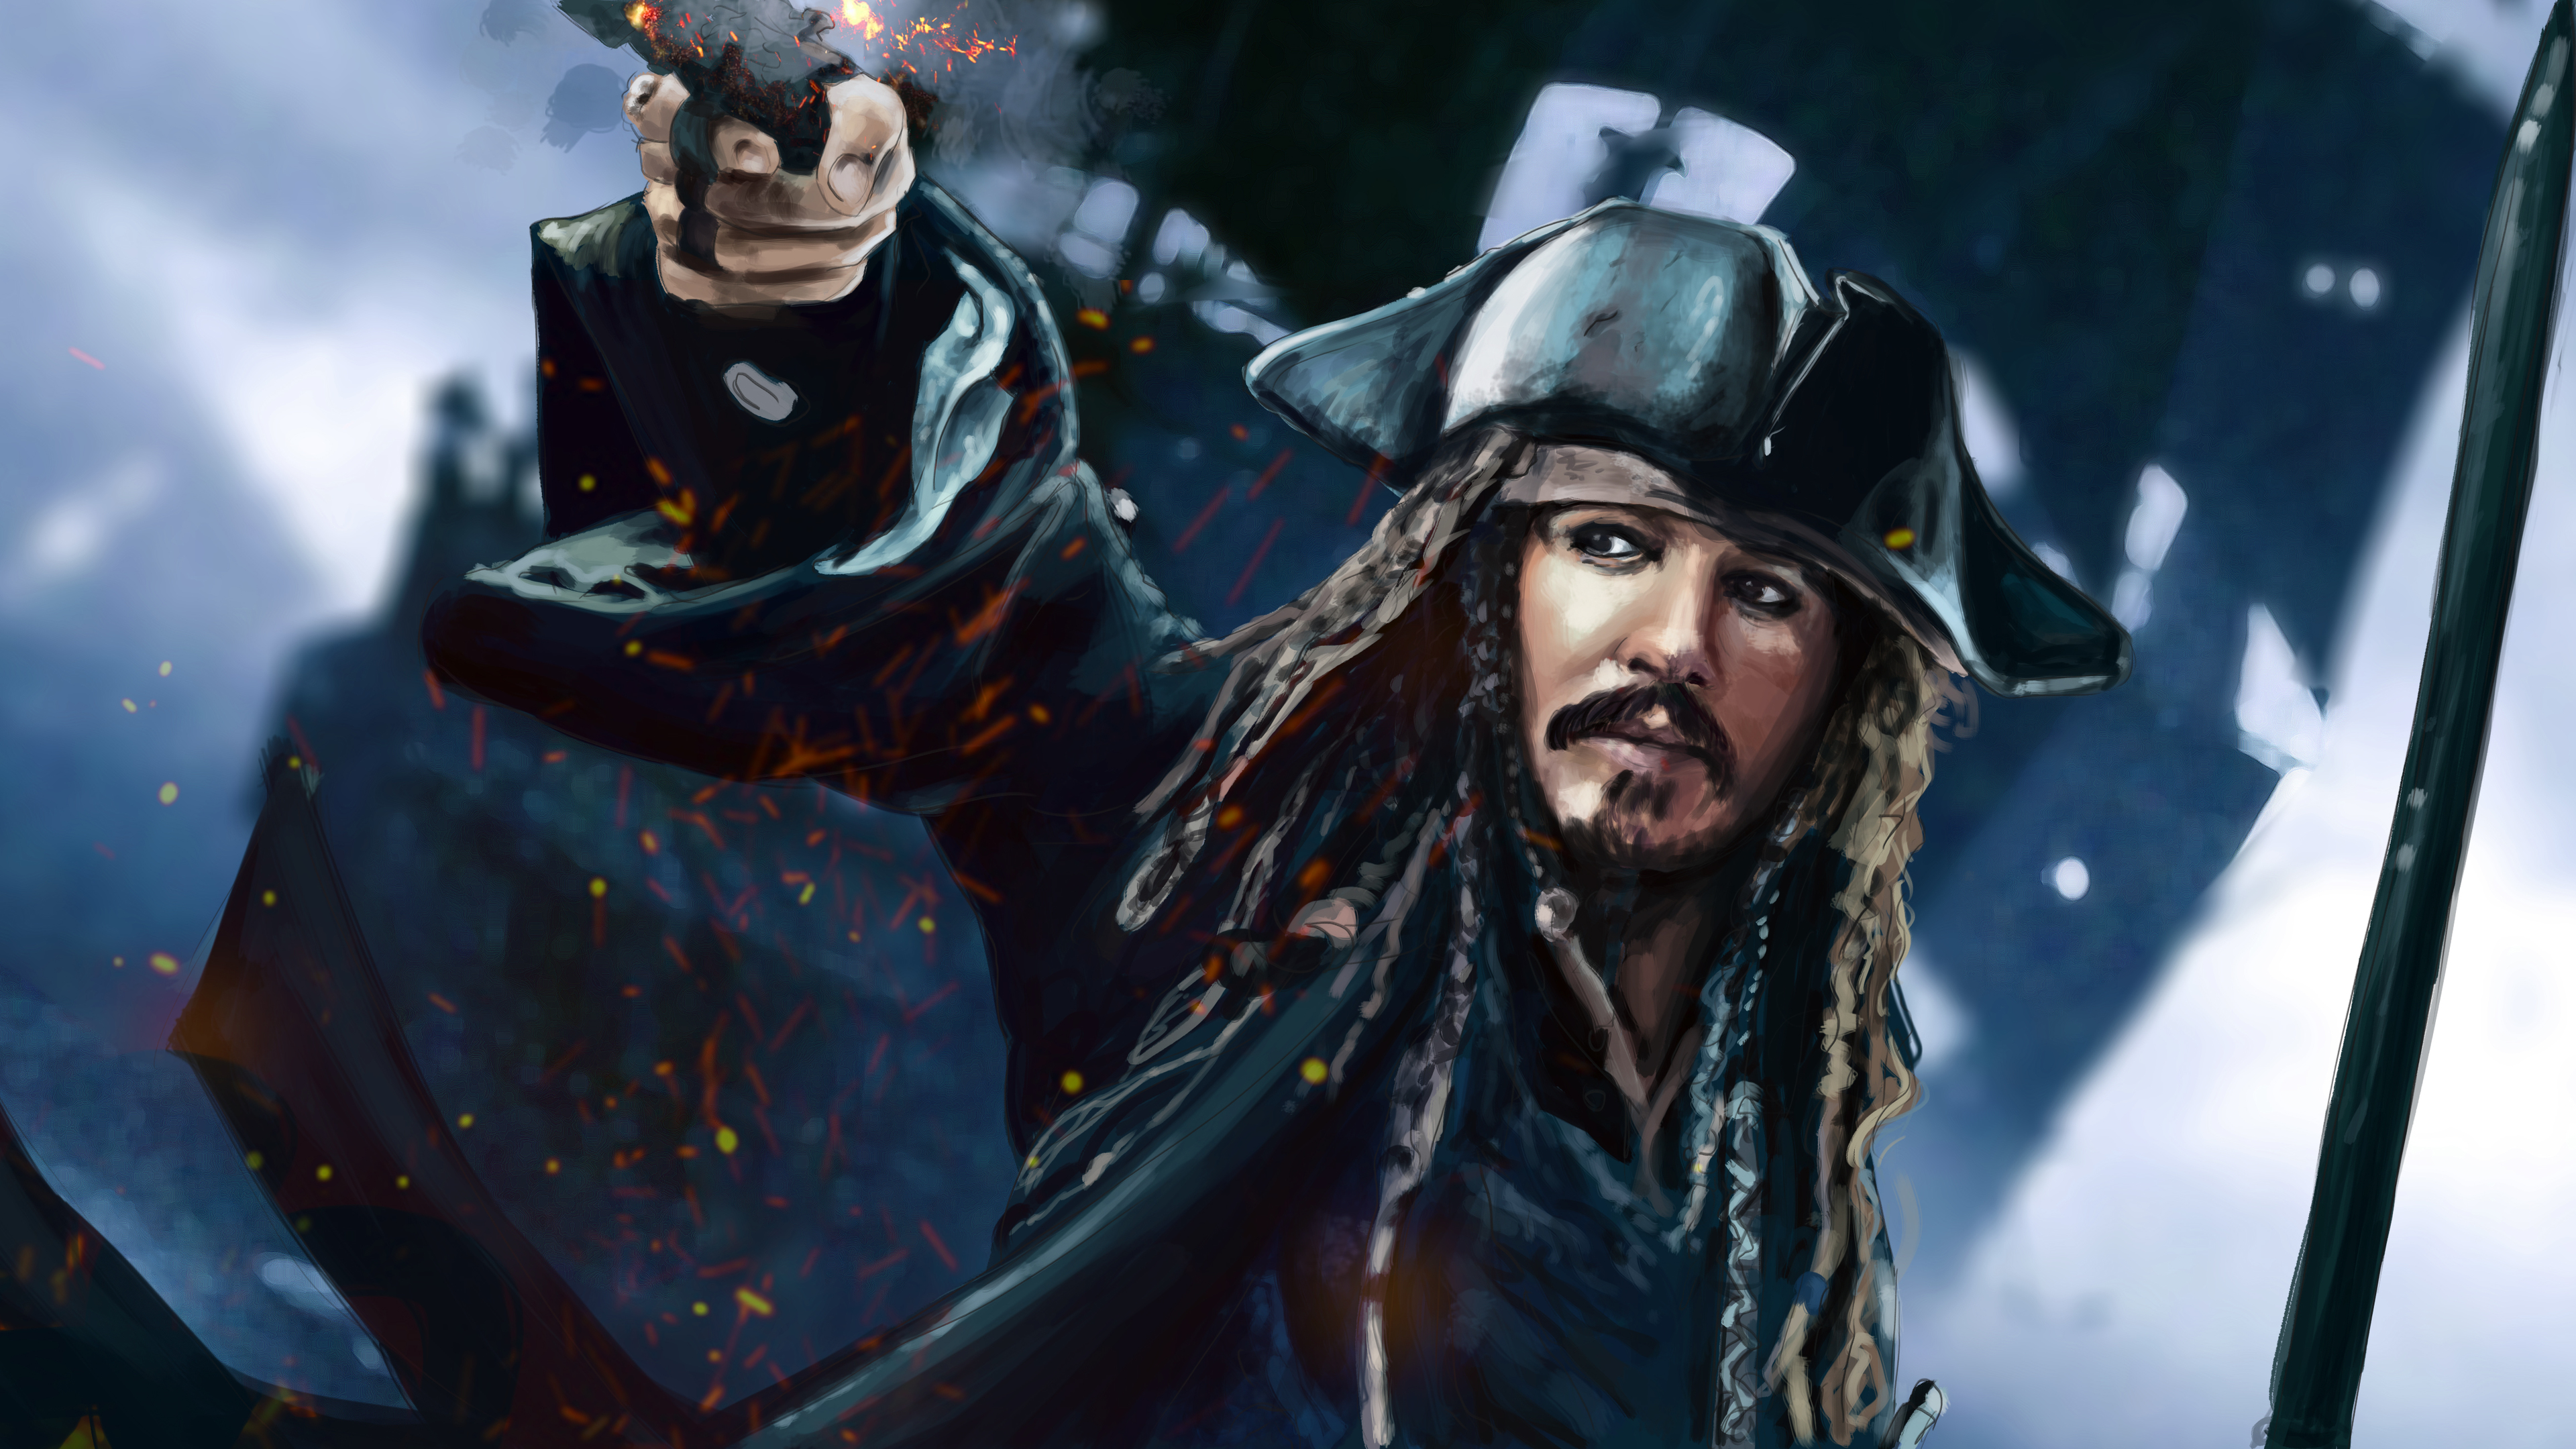 Jack Sparrow 4k Artwork 4k-wallpapers